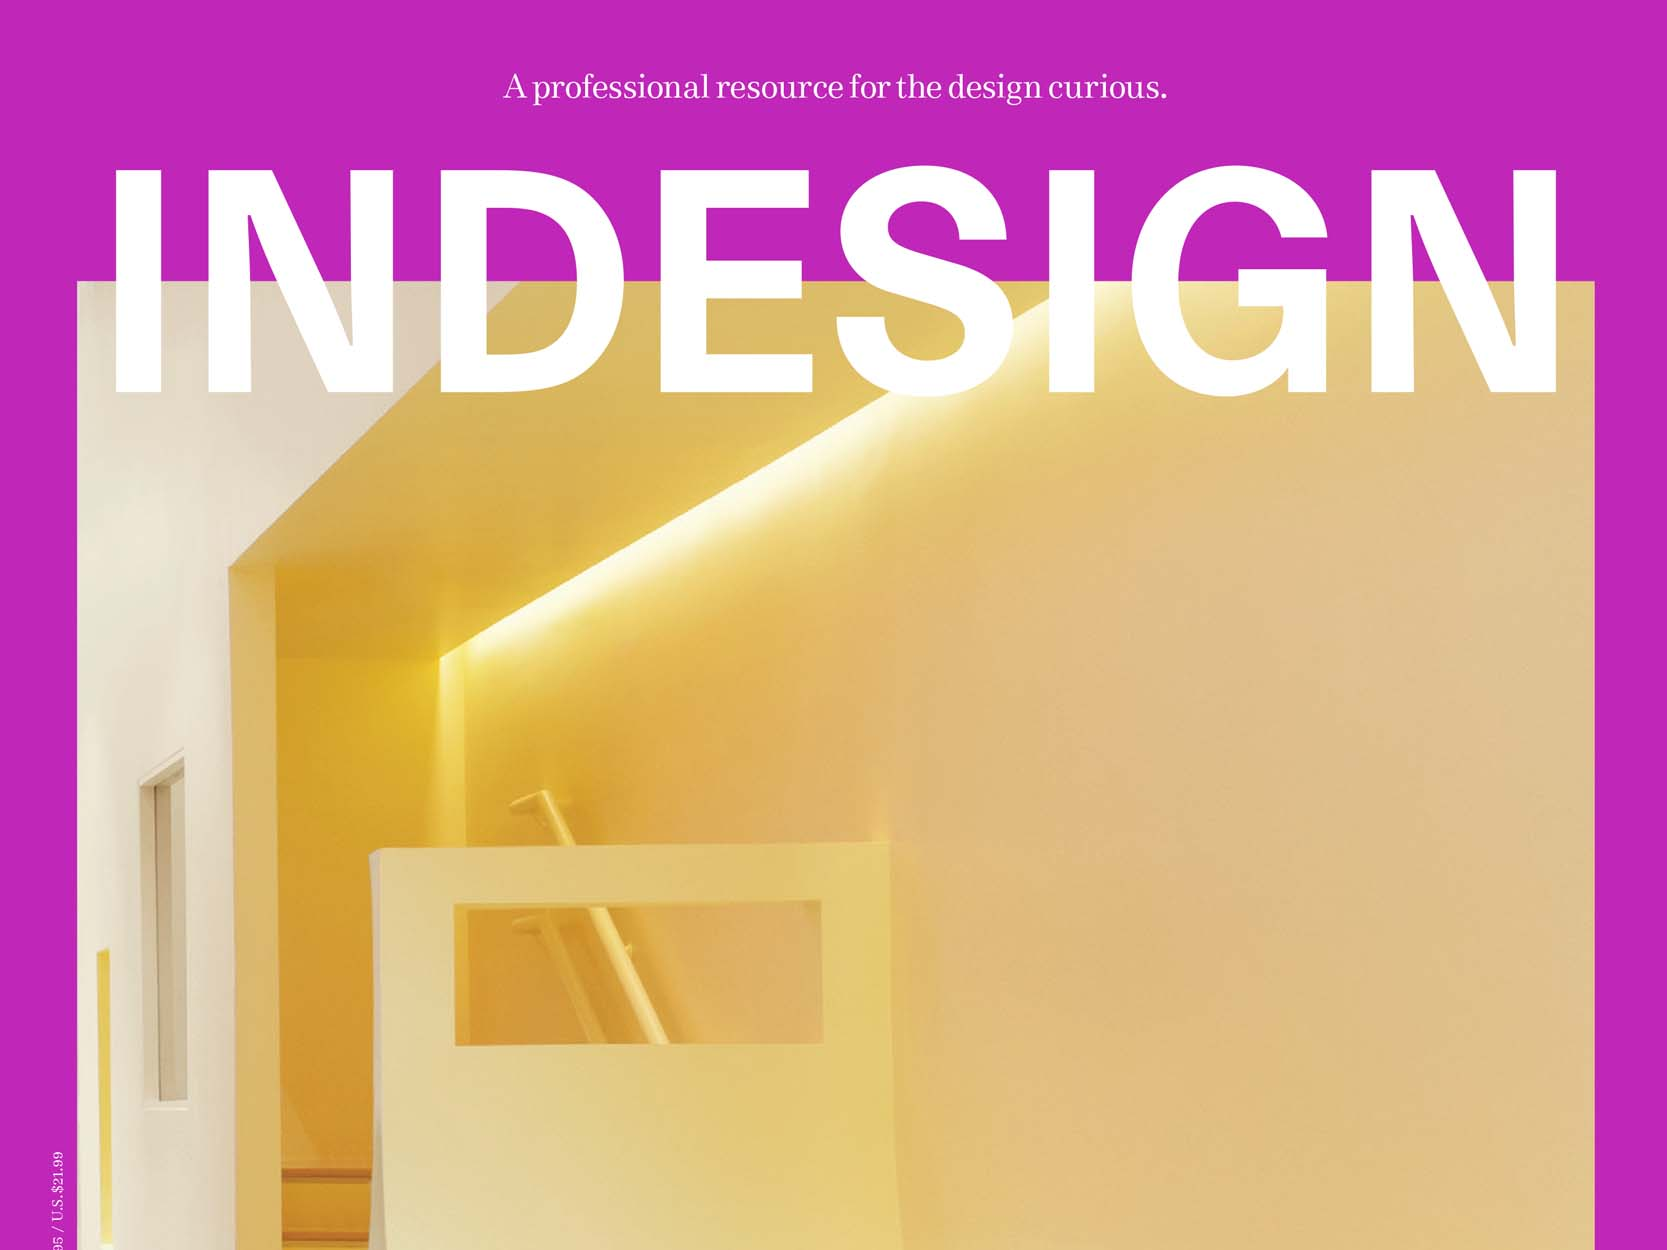 Indessign Live Education on the move issue June 2020 featuring UTS Sun Shading System Discussion with Tim Phillips